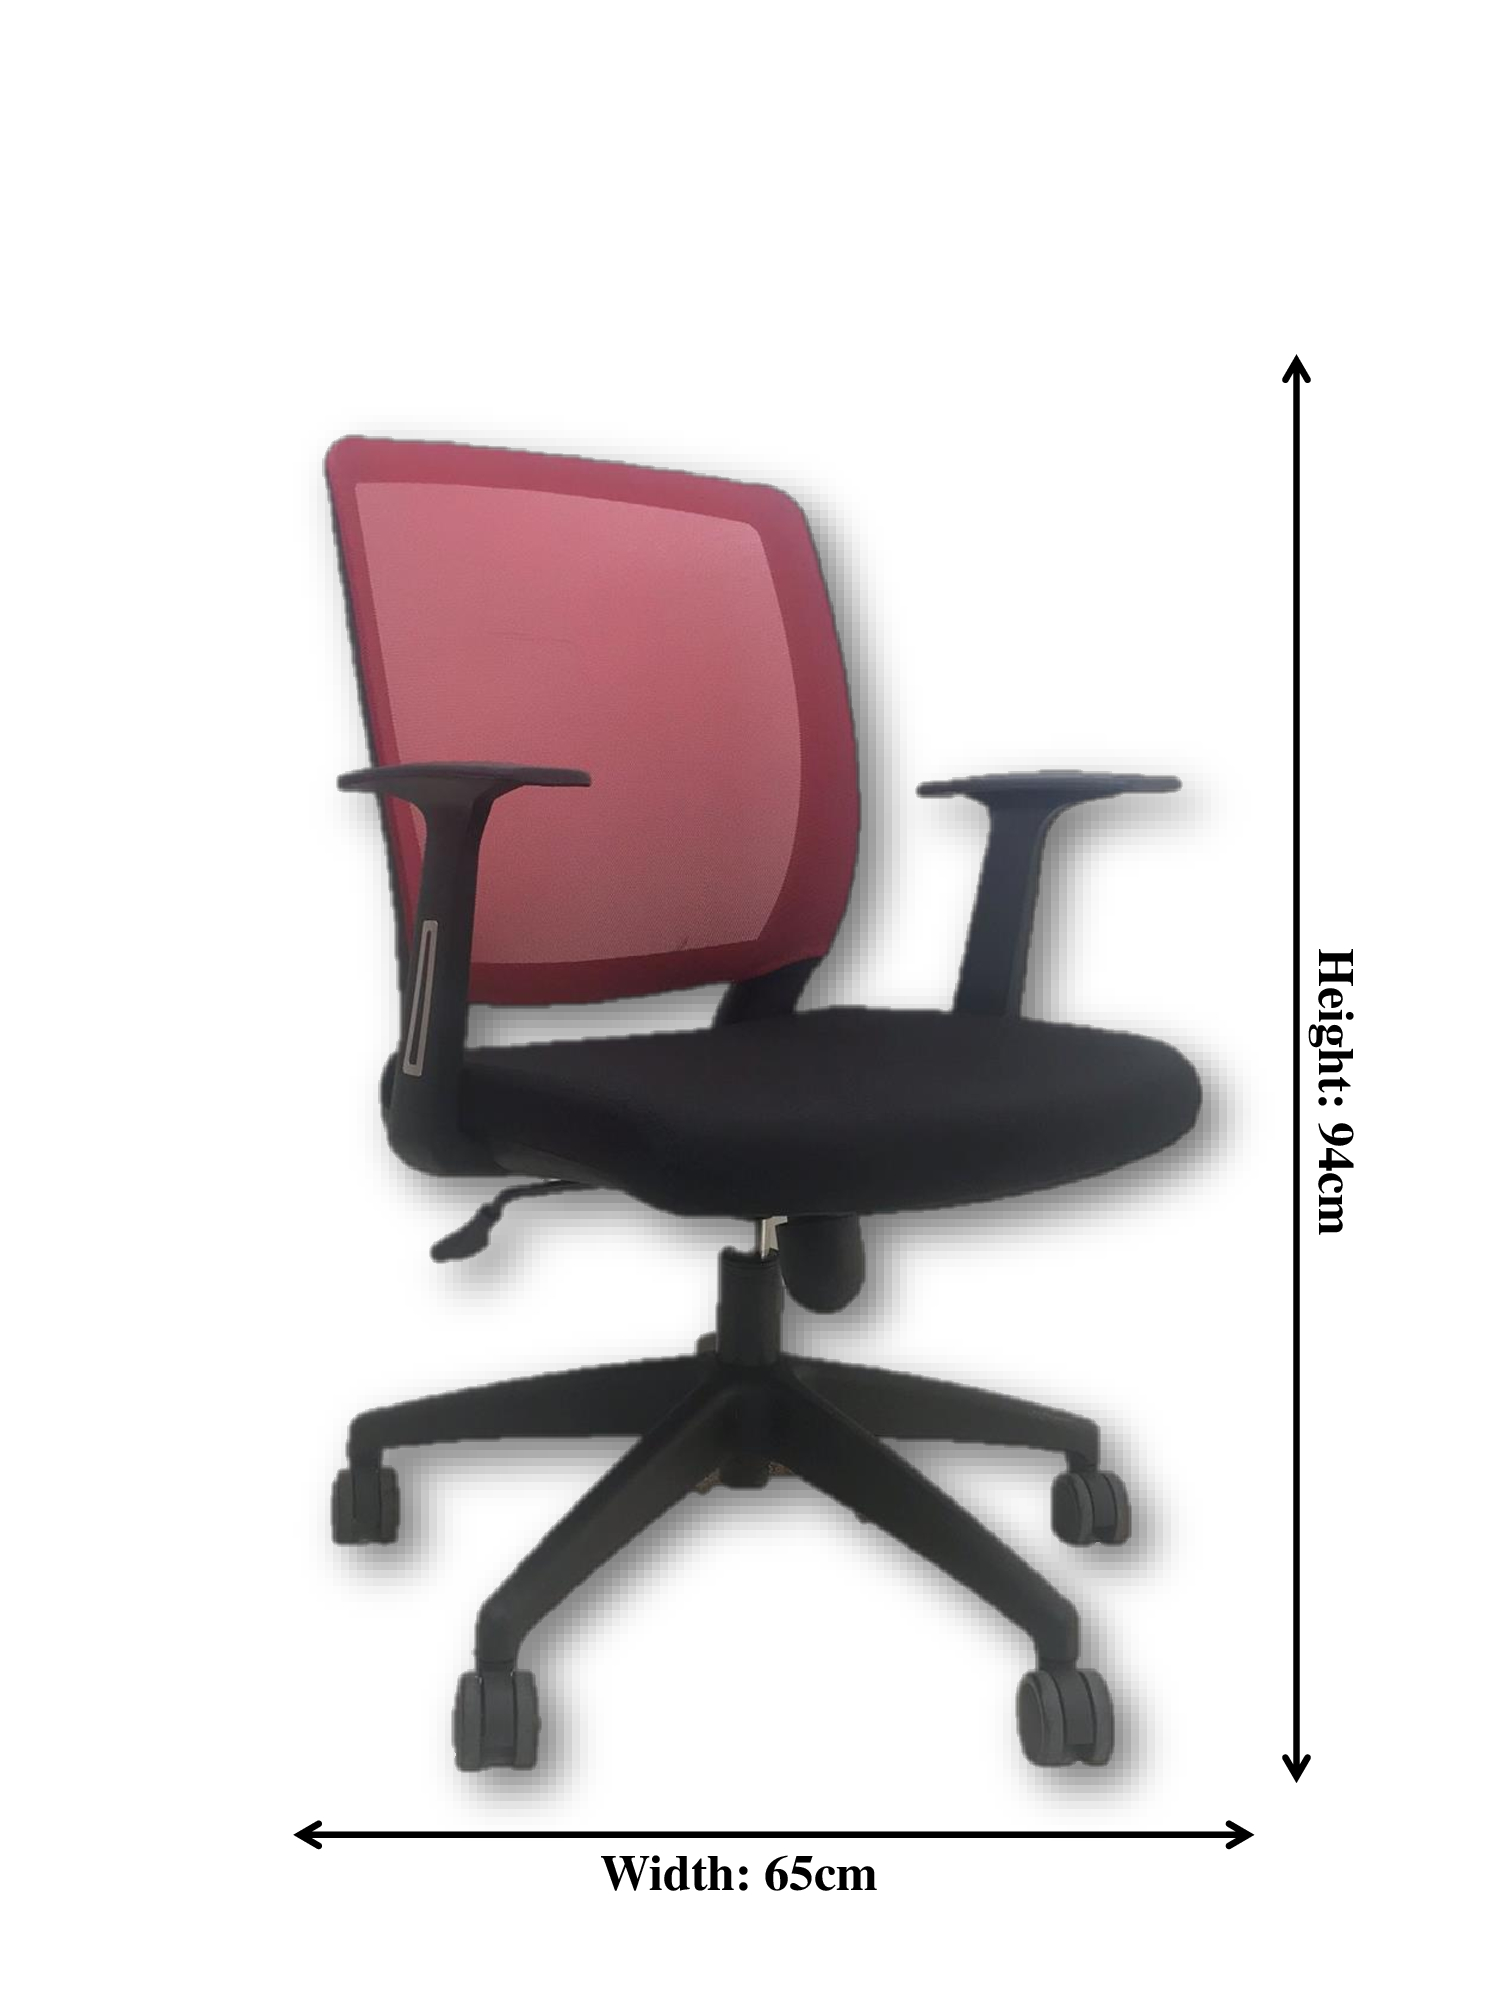 alterseat.com common features. alterseat copyrights office chair ergonomic chair desk chair moulded foam